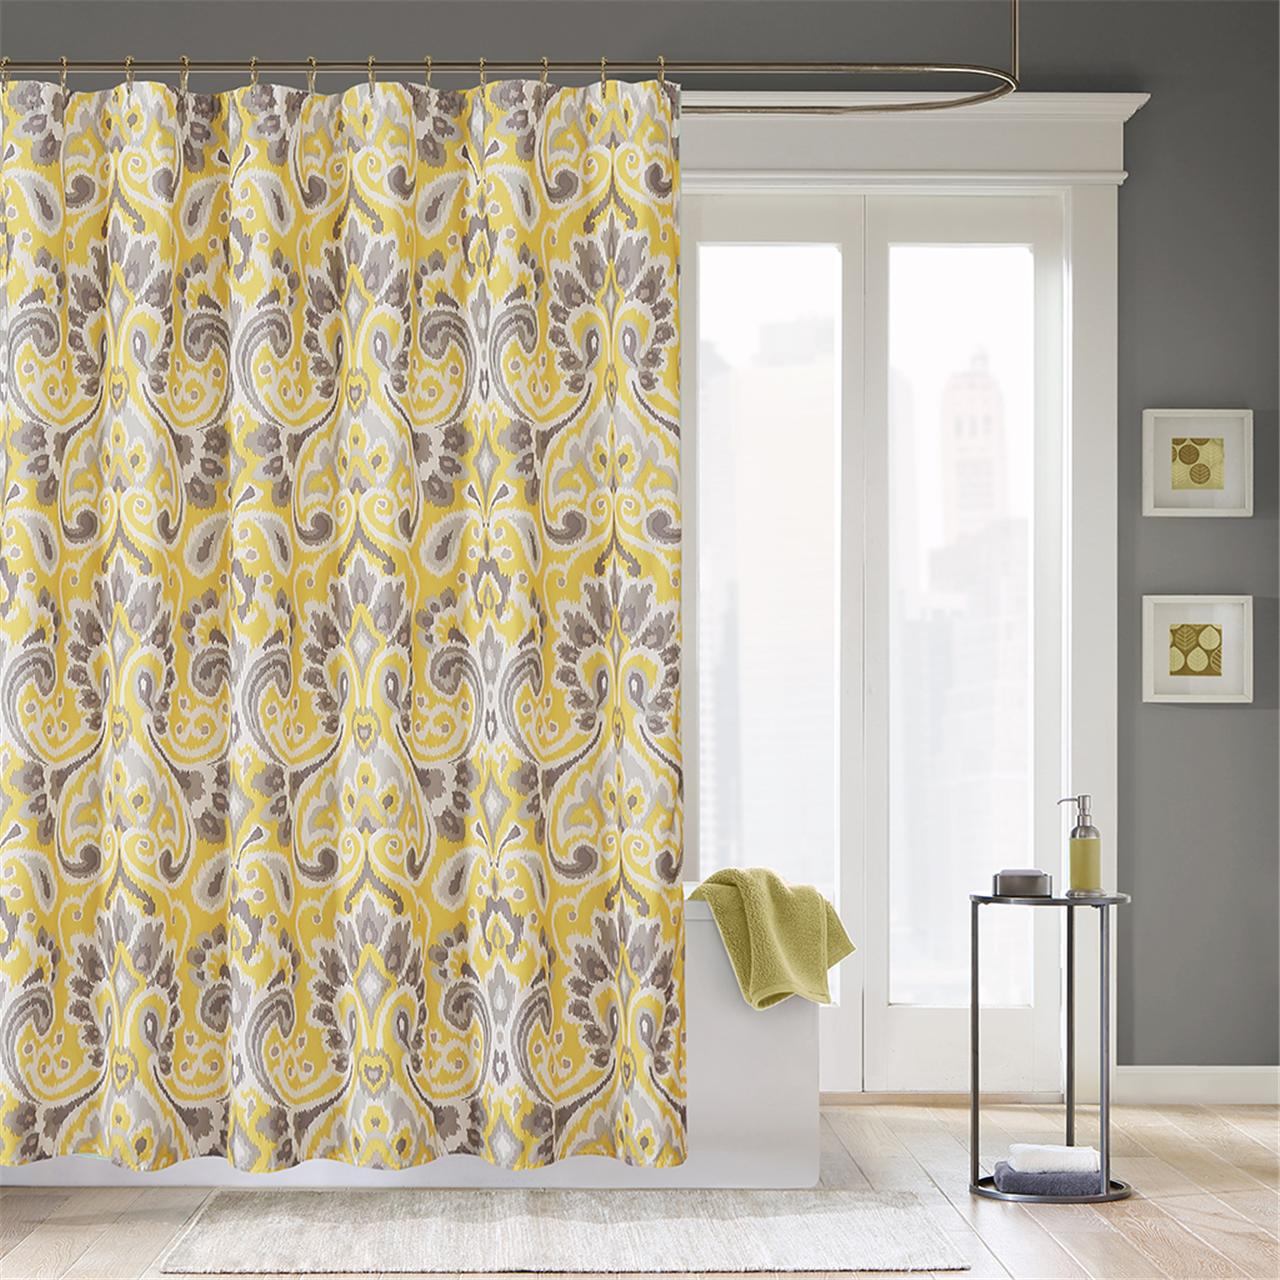 yellow bedroom curtains yellow patterned shower curtains shower curtains ideas 13886